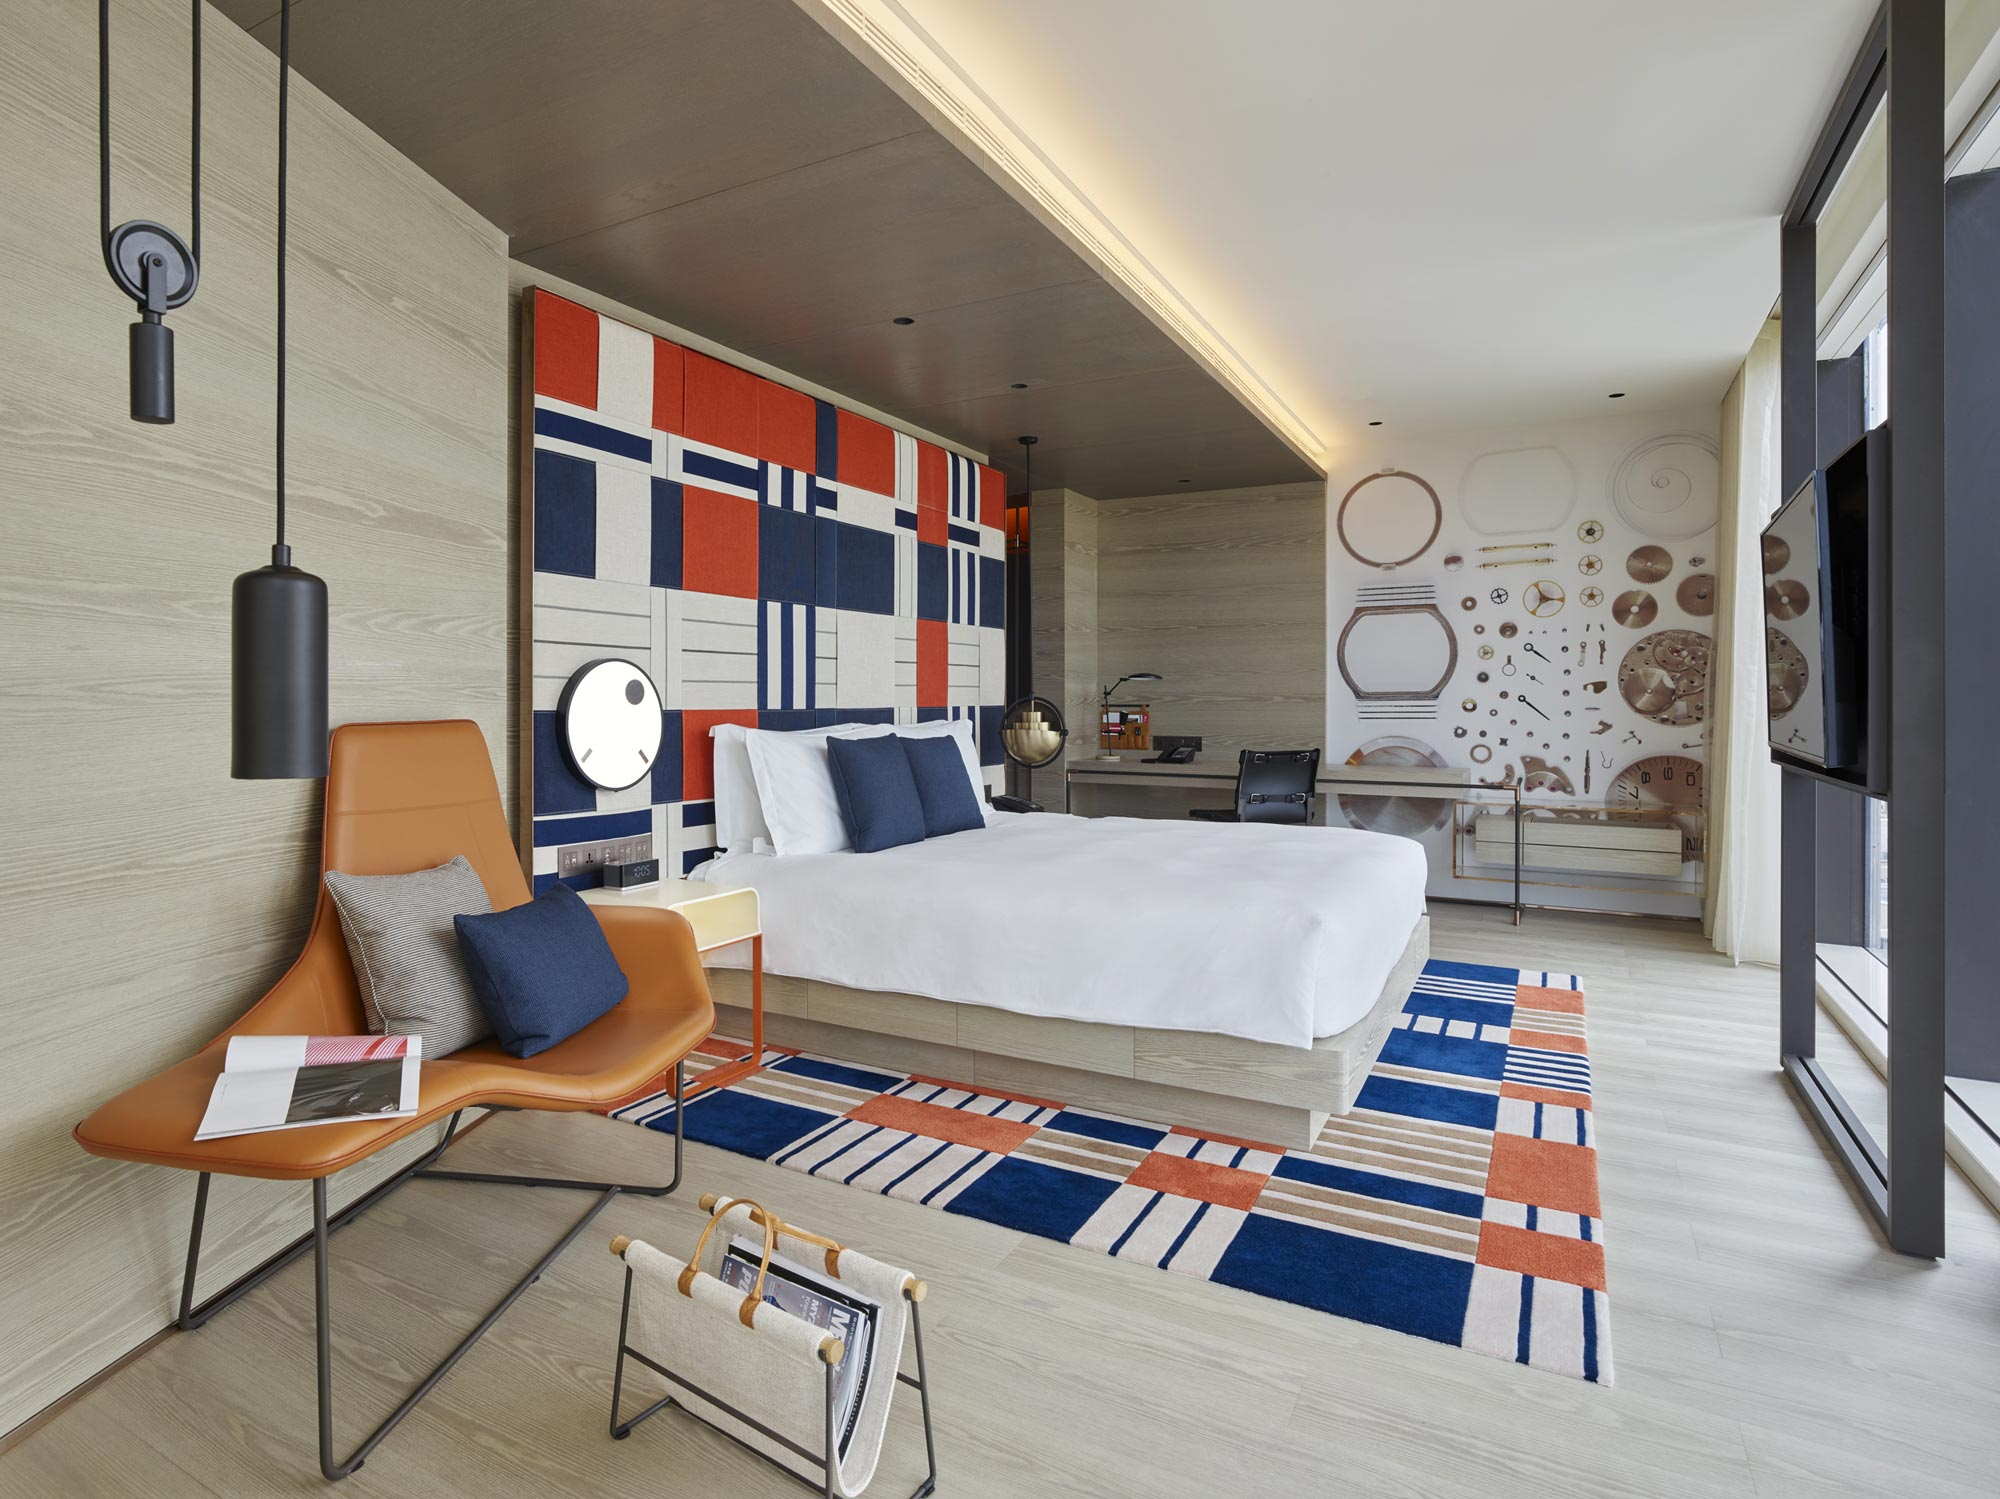 Hotel design archives society of british and for Design hotel essen